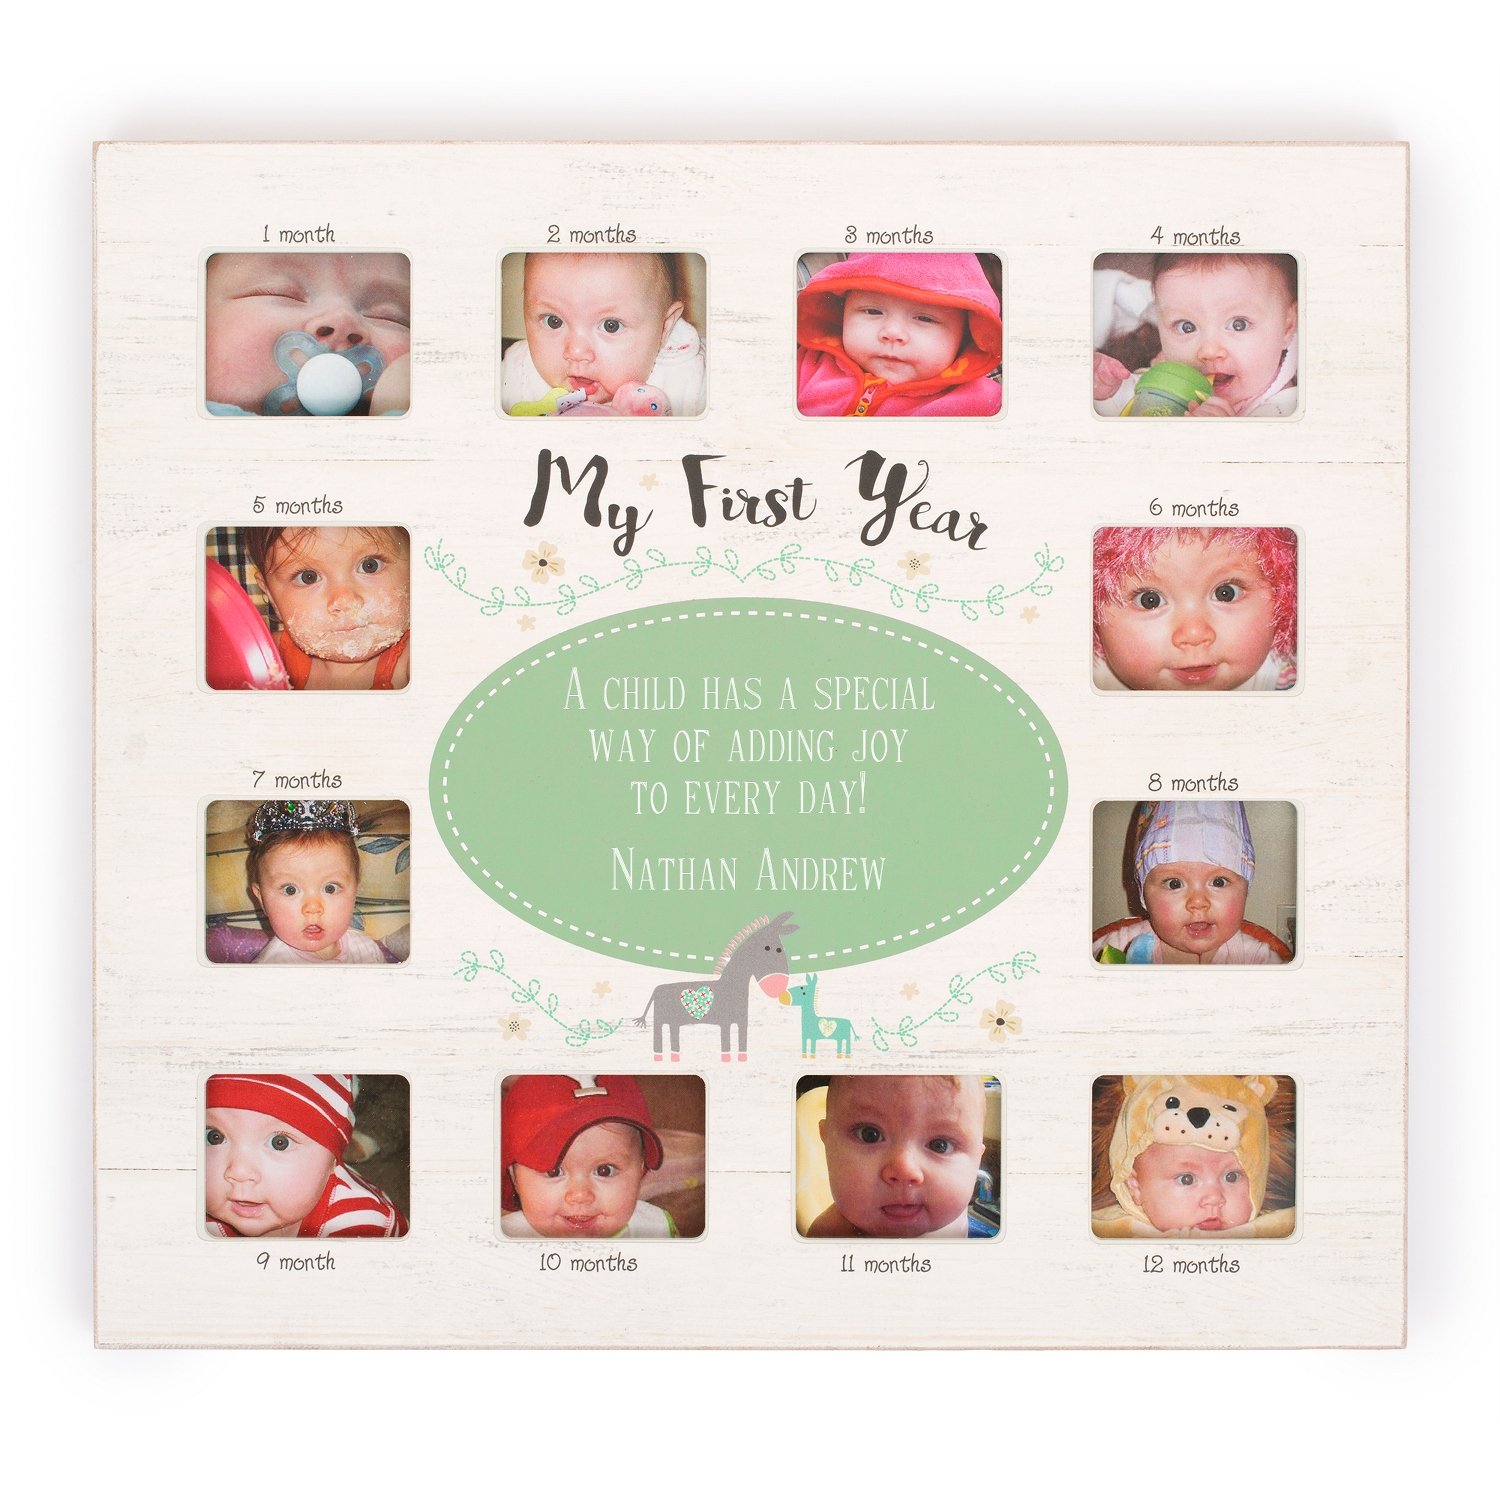 Personalized baby keepsakes at things remembered zoo 12 month frame negle Gallery